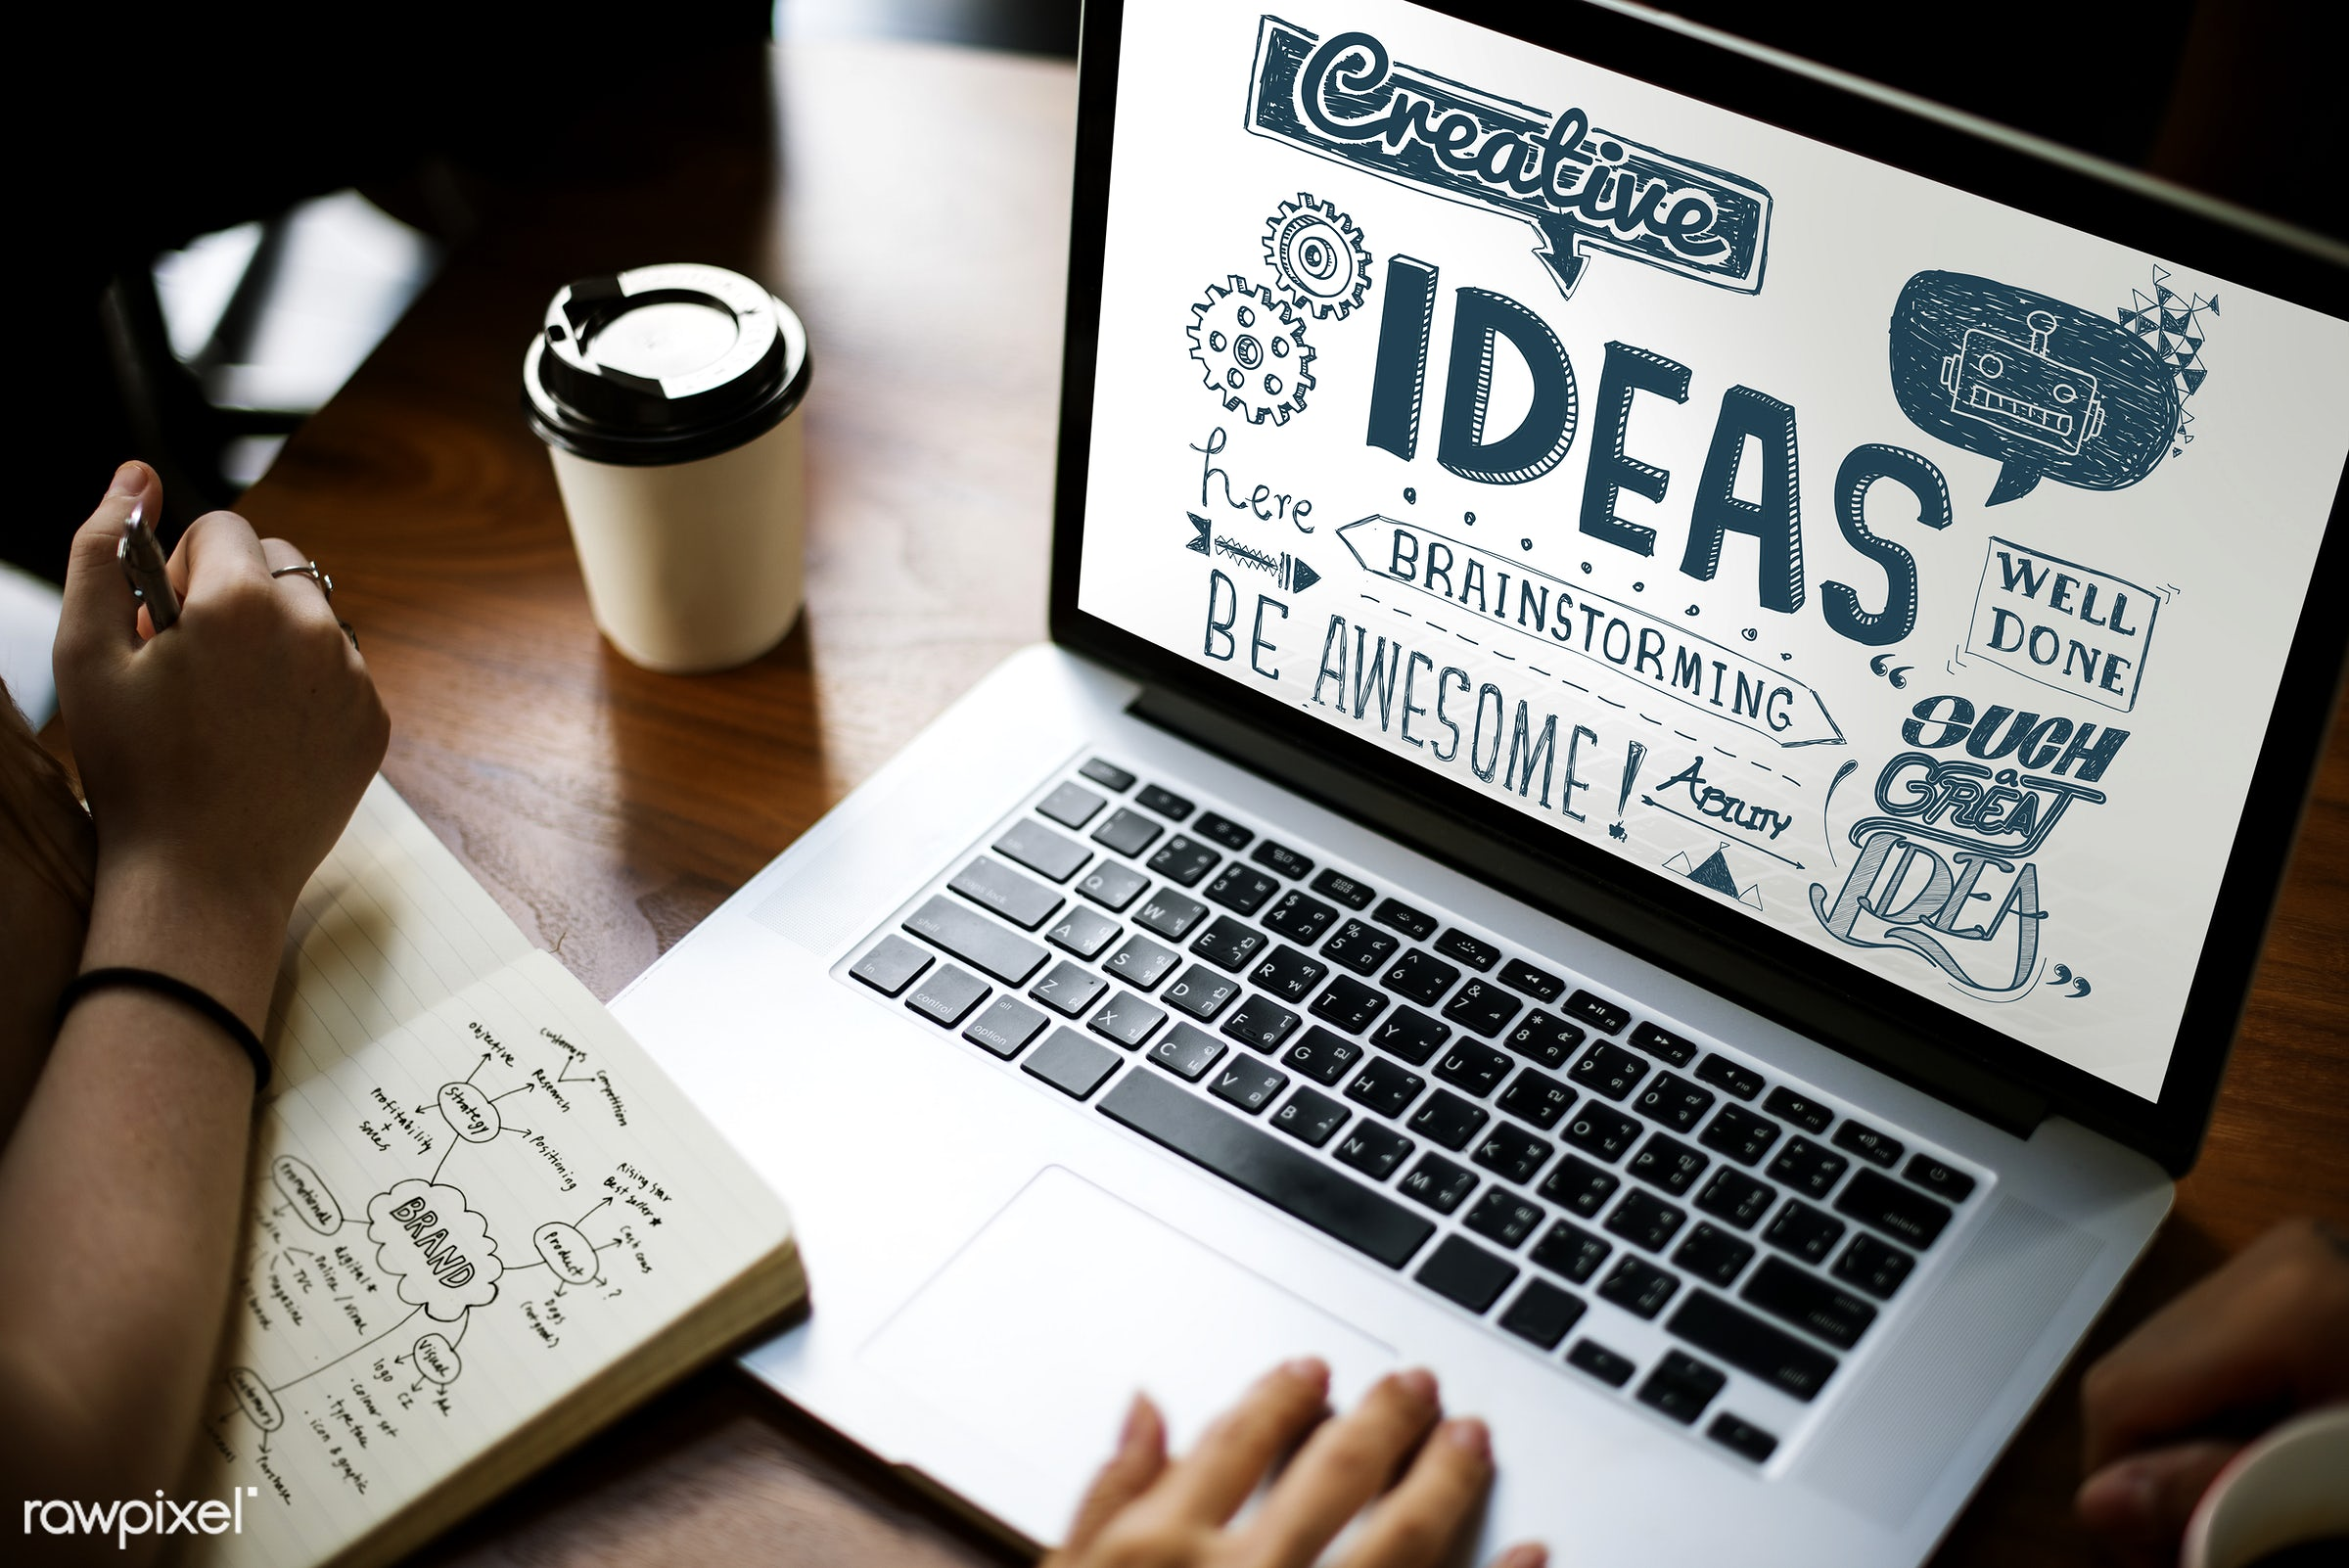 awesome, brainstorming, browsing, business, coffee cup, creative, creativity, device, digital, digital device, graphics,...